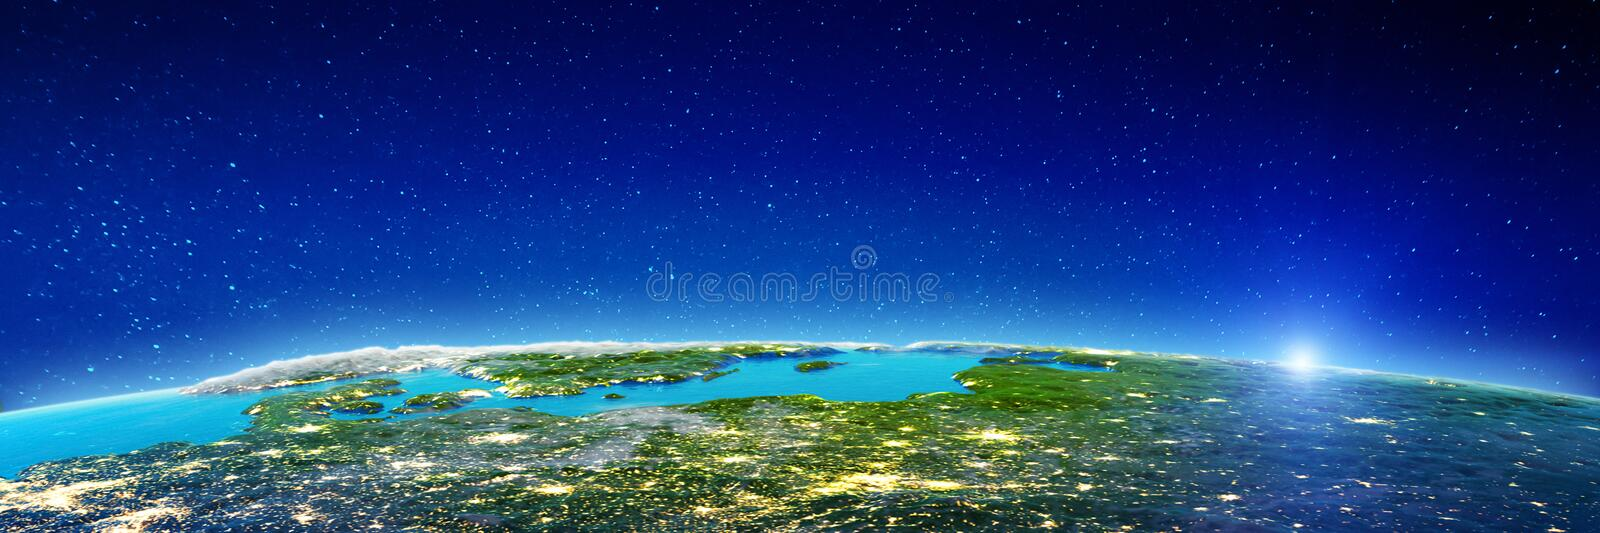 East Europe at night royalty free illustration